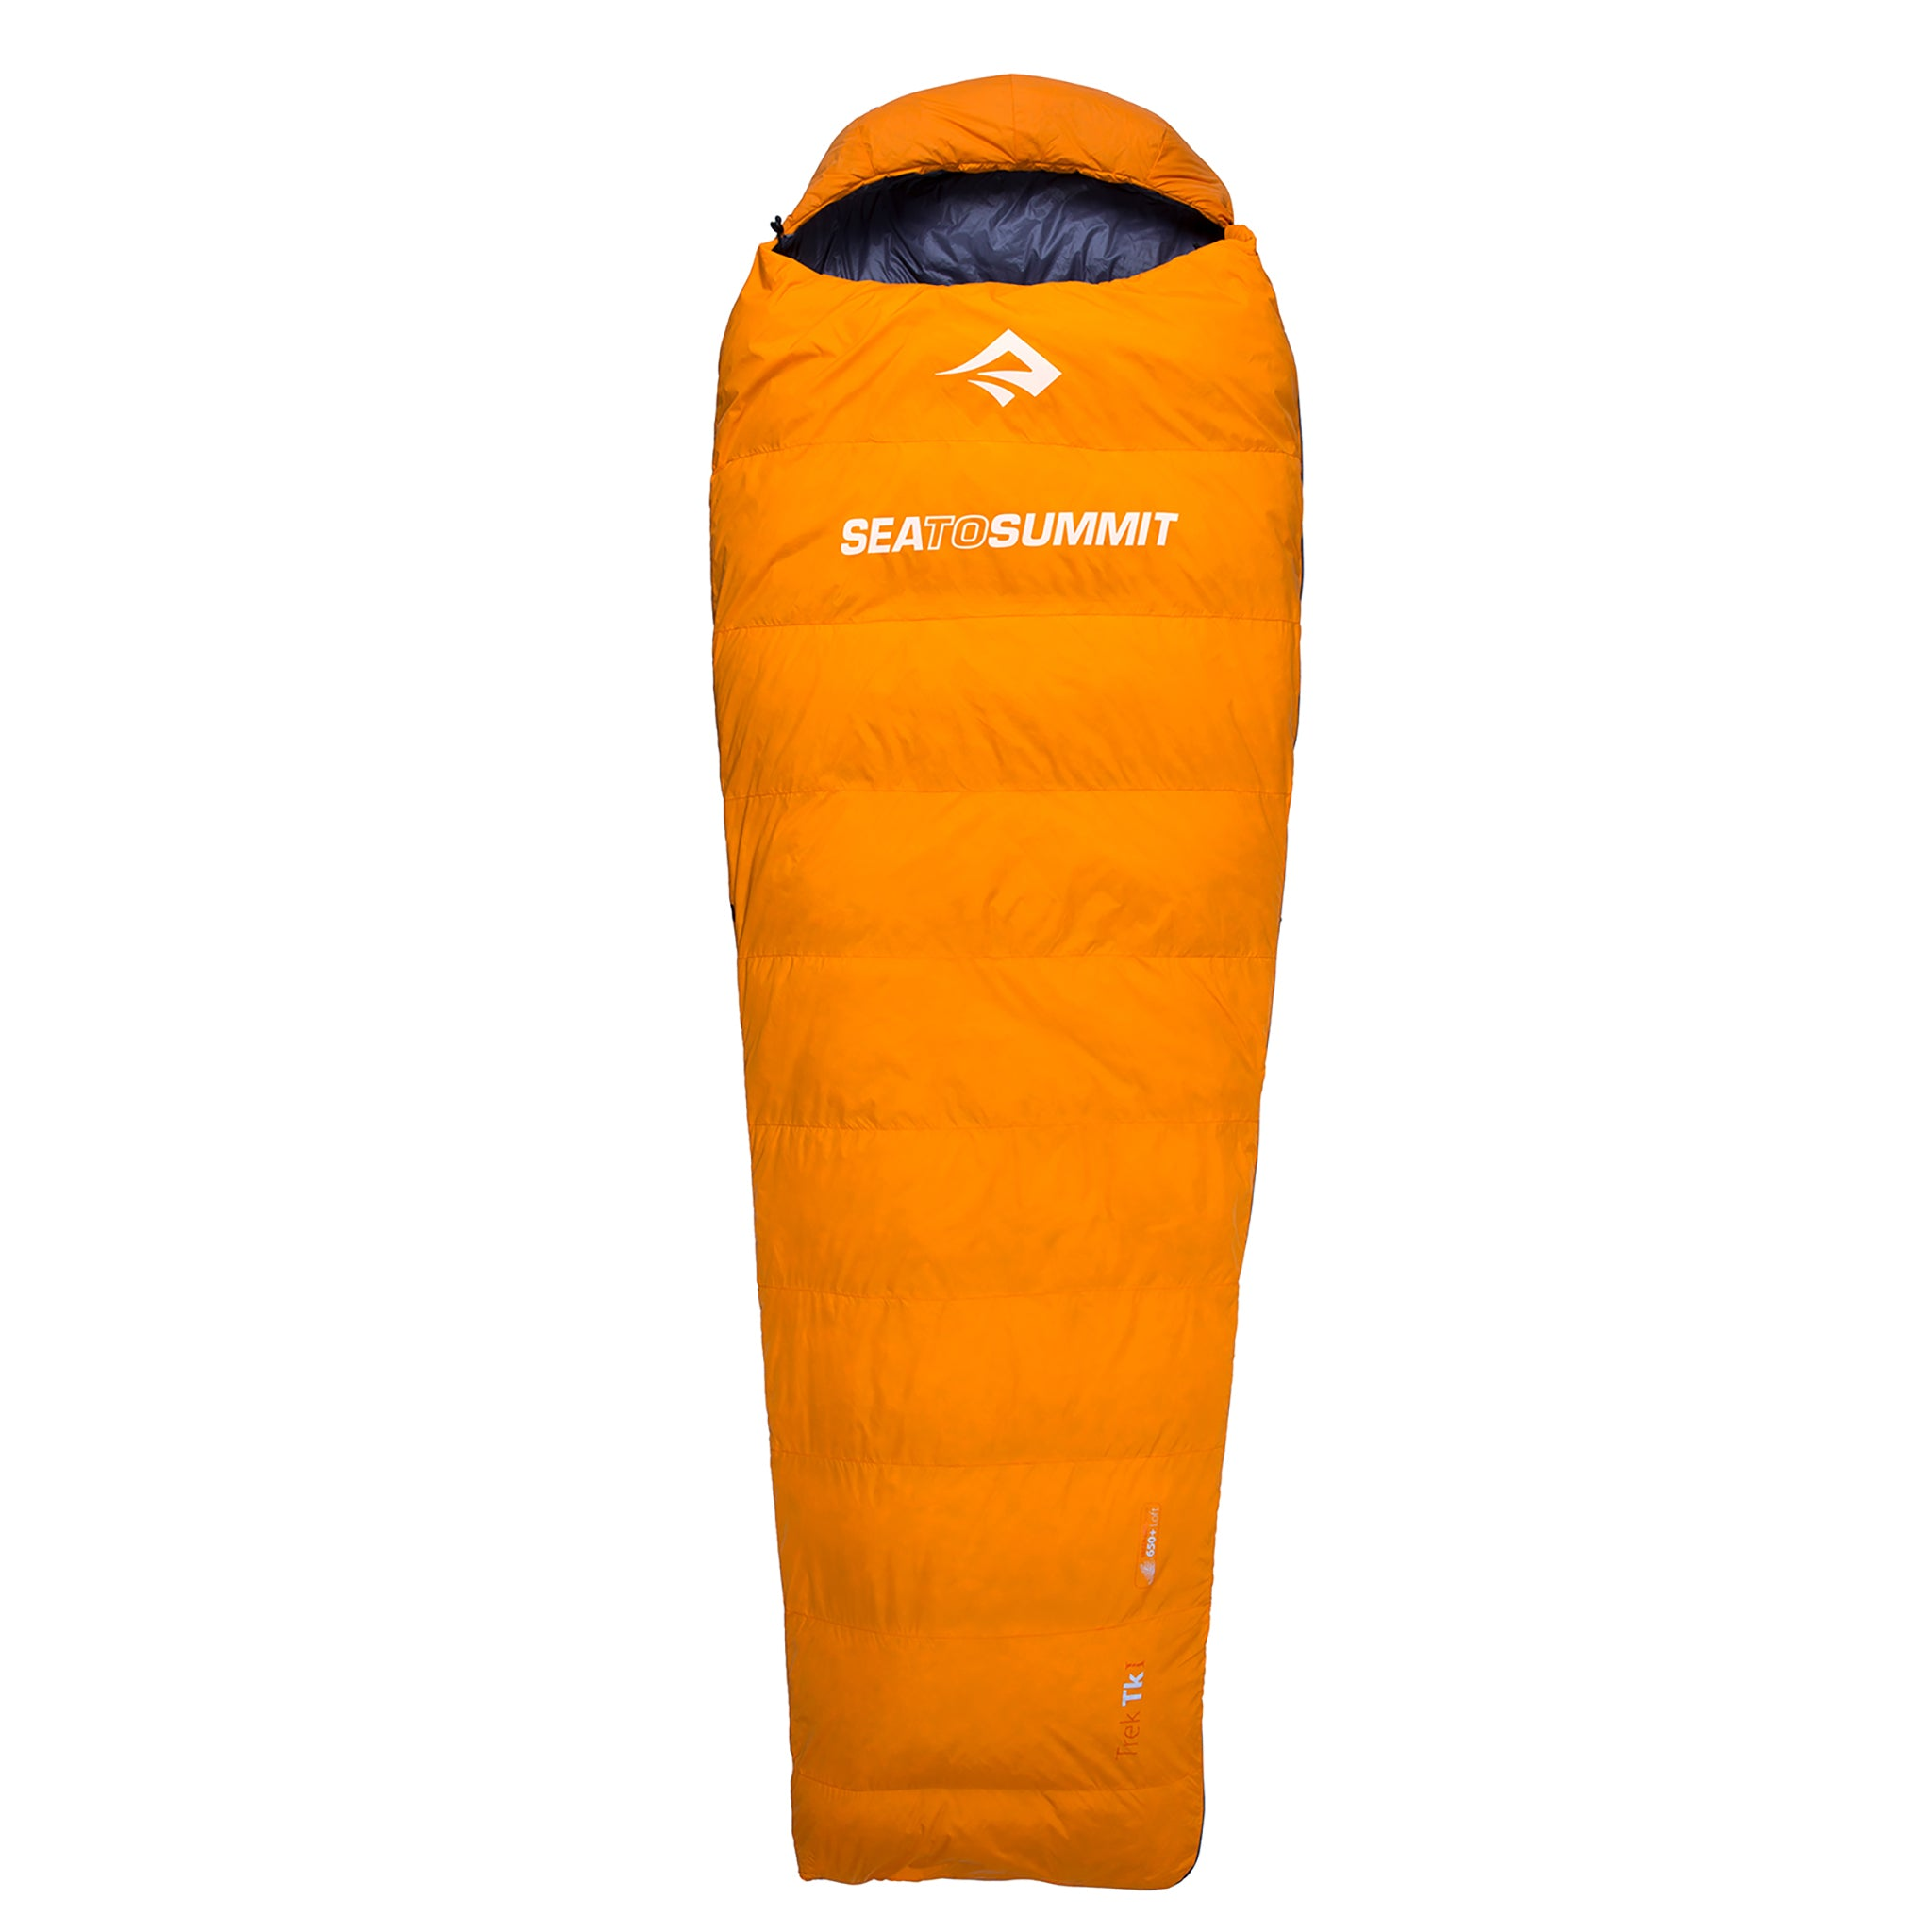 Trek TKII Down Sleeping Bag _ car camping